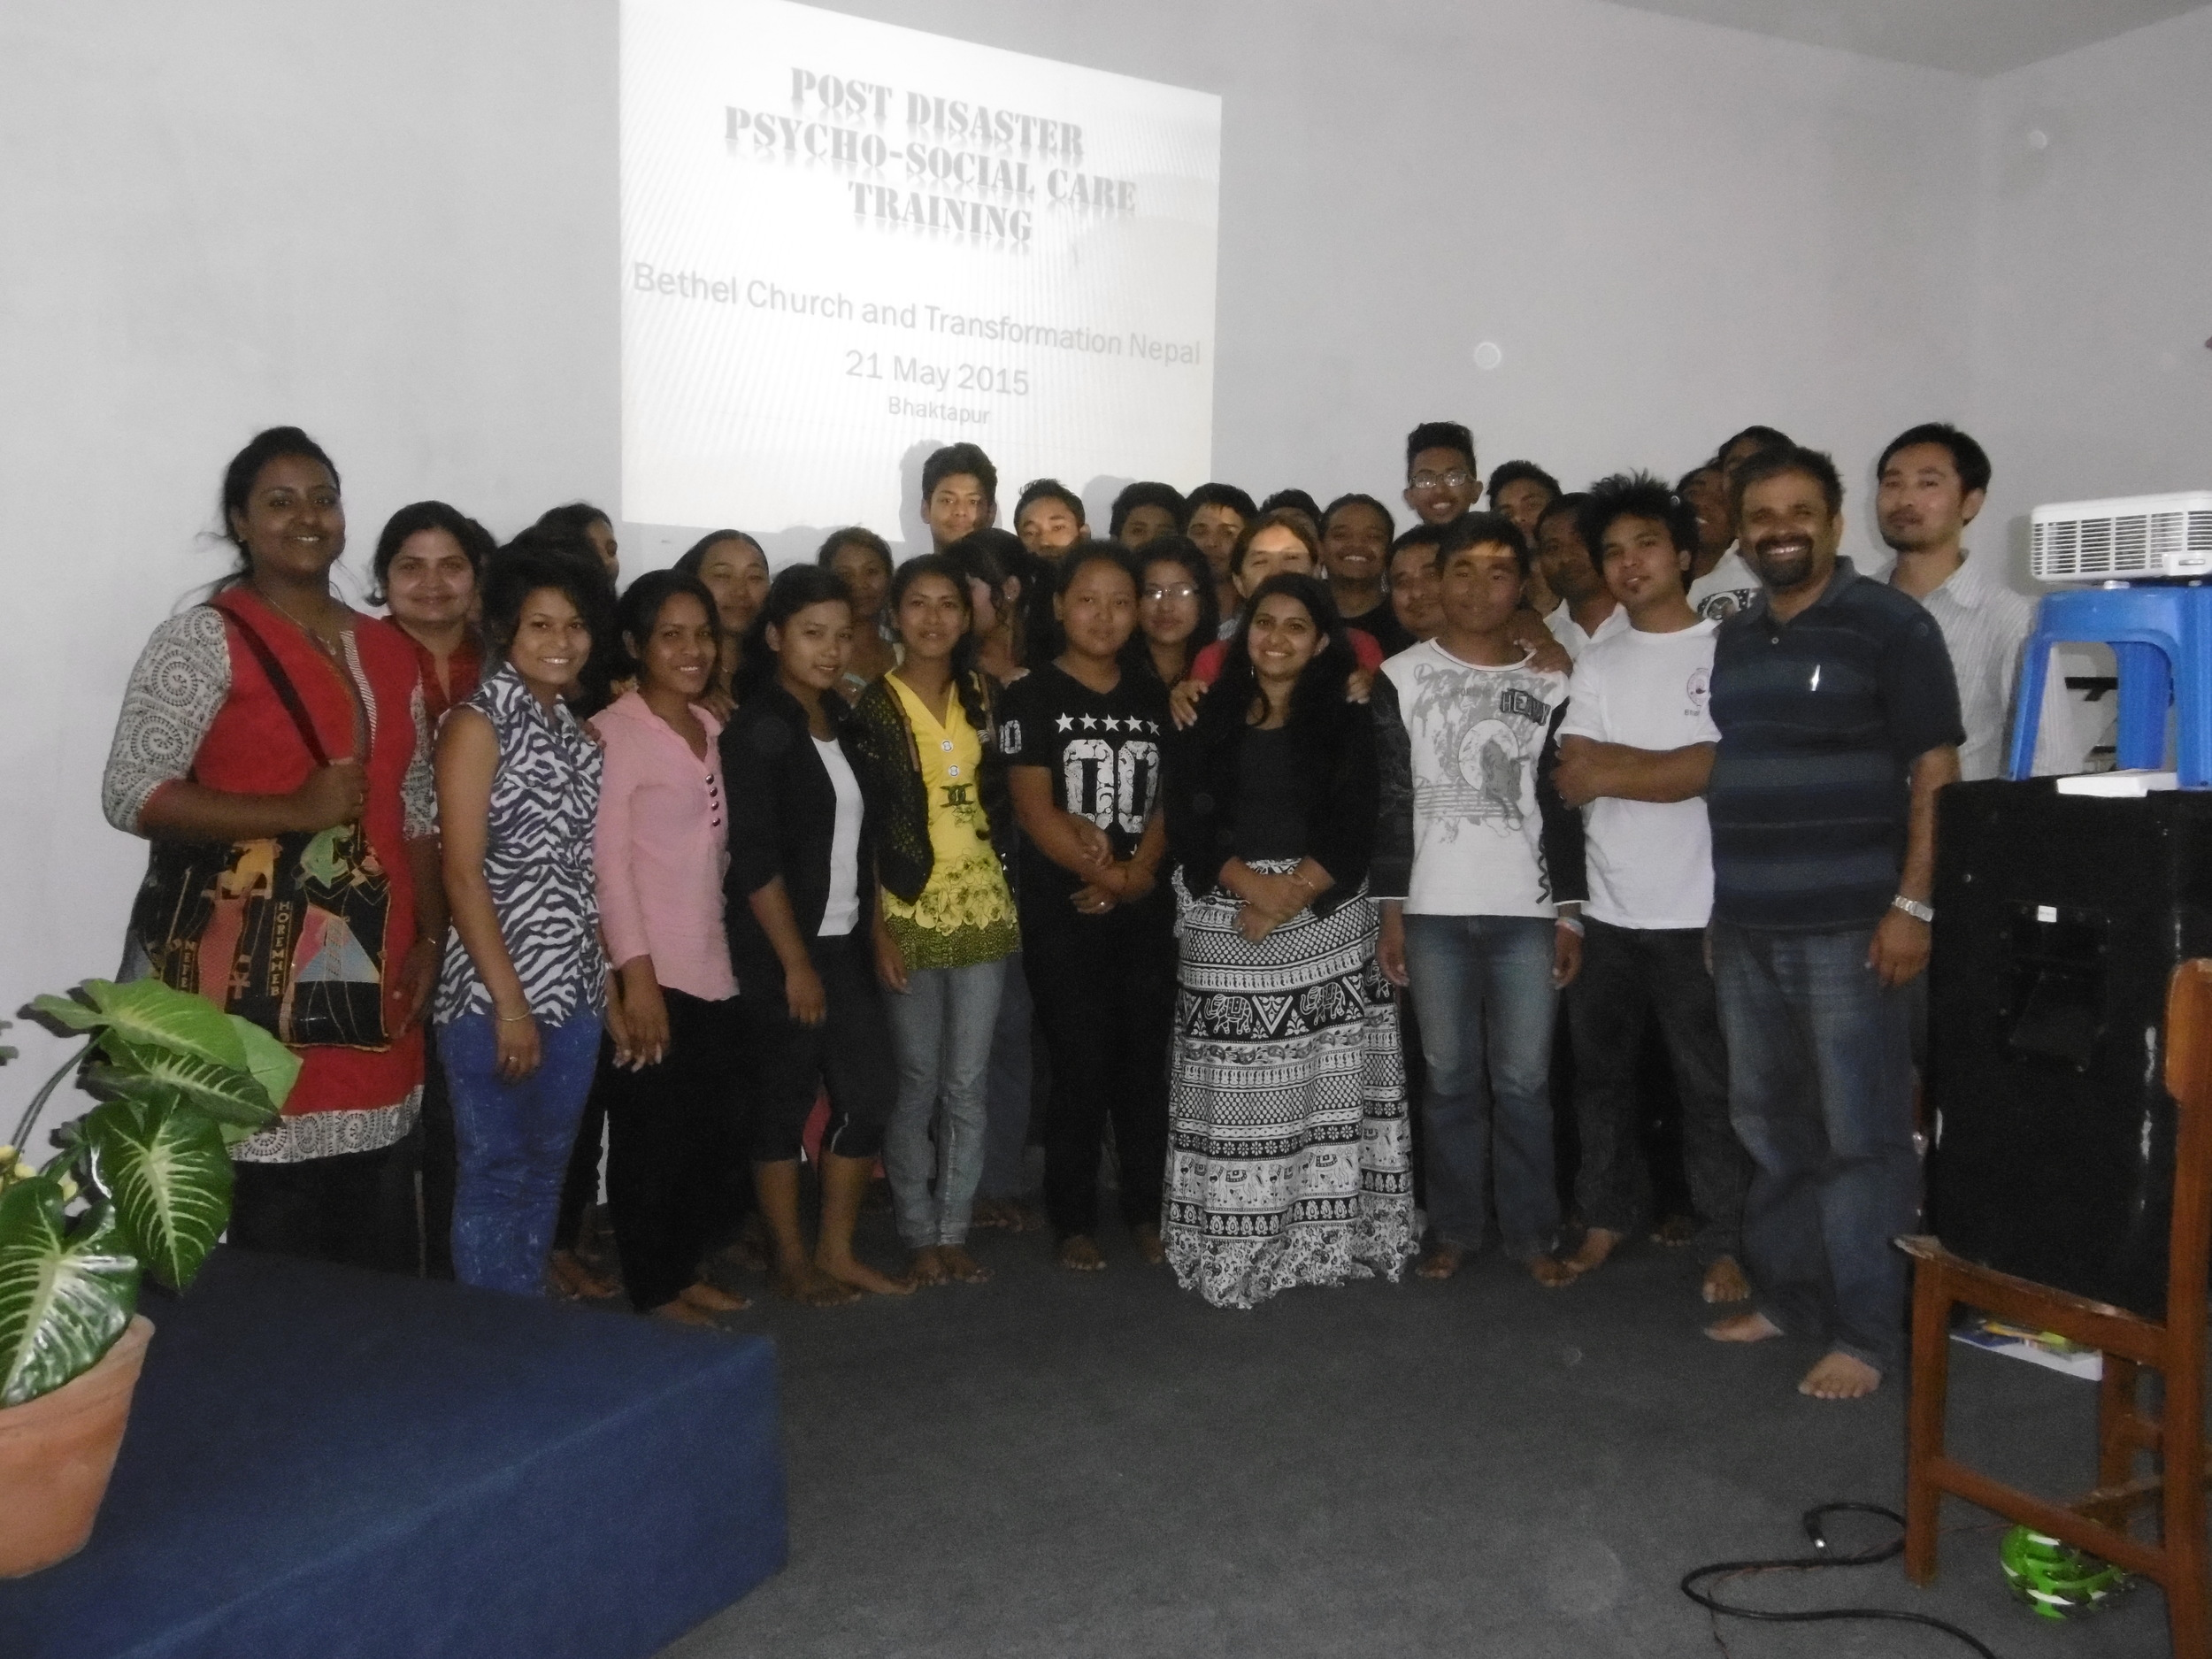 """Mukunda trains church teams for what they call """"Post Disaster Psycho-Social Care Training""""."""